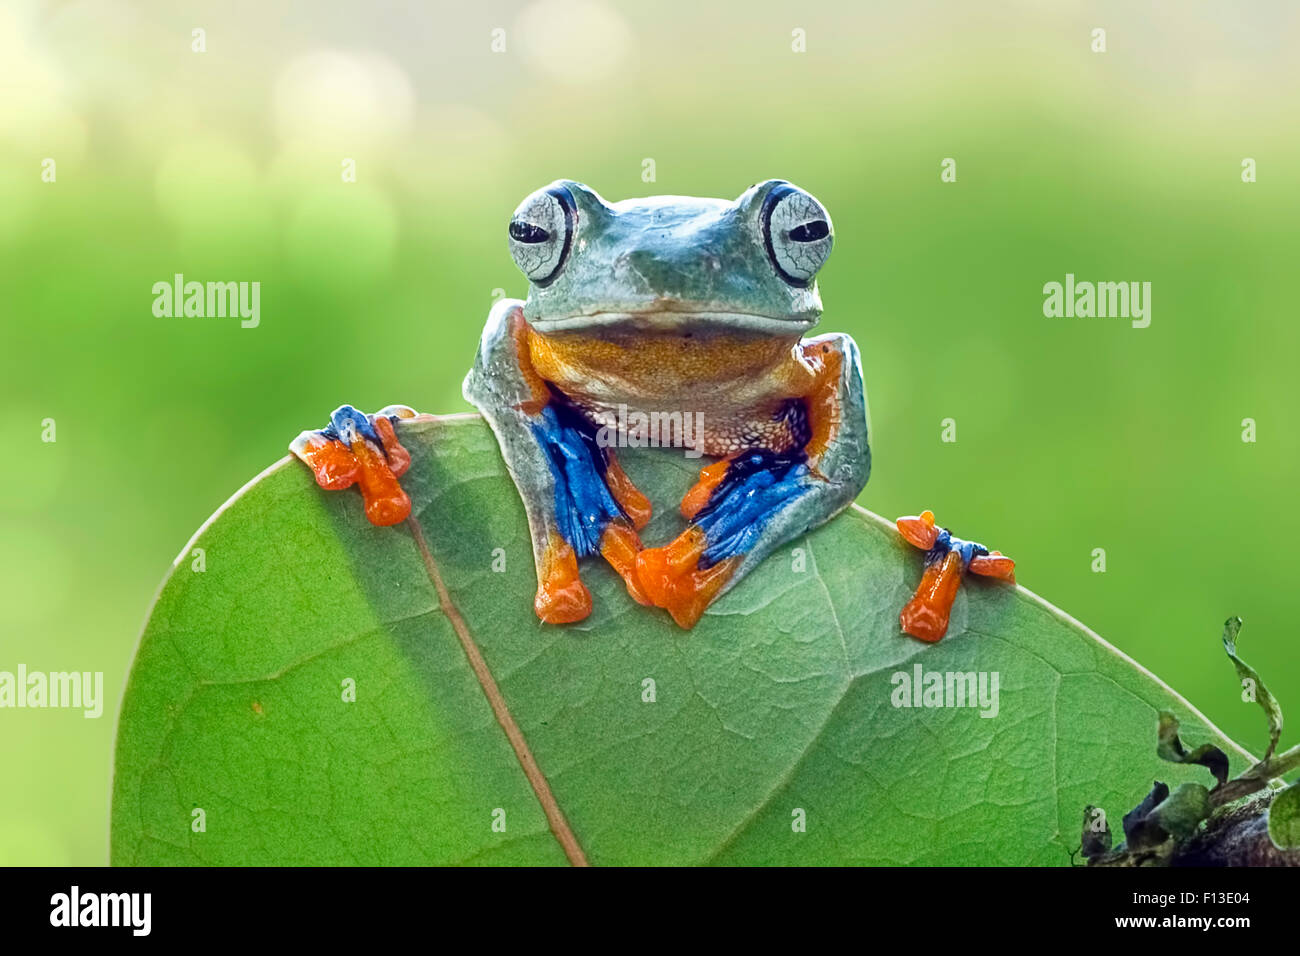 Frog sitting on a leaf Photo Stock